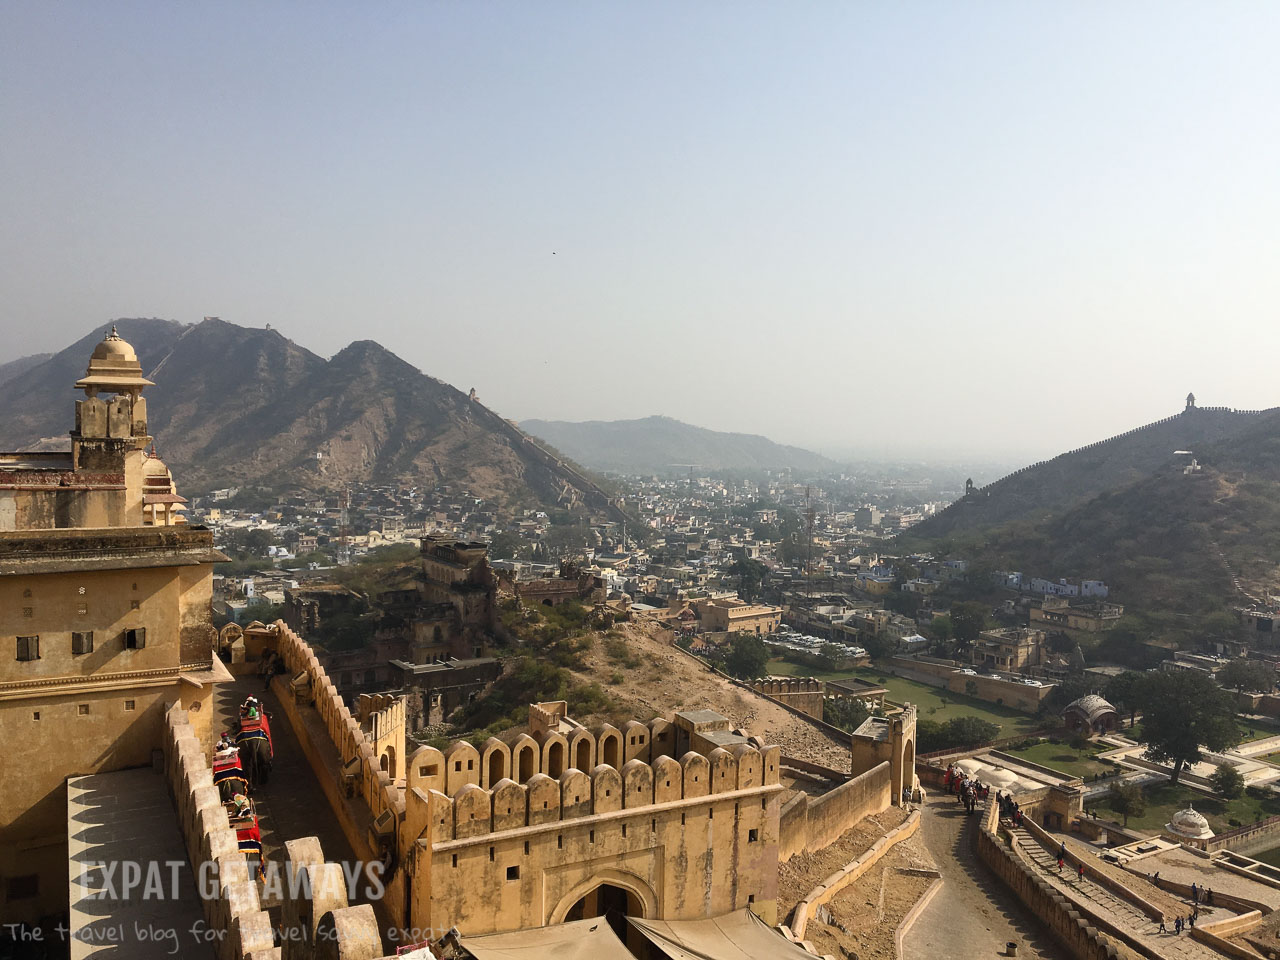 The Amber Fort, Jaipur was the highlight of our golden triangle tour. Expat Getaways, 5 Nights Golden Triangle, Delhi, Jaipur & Agra, India.